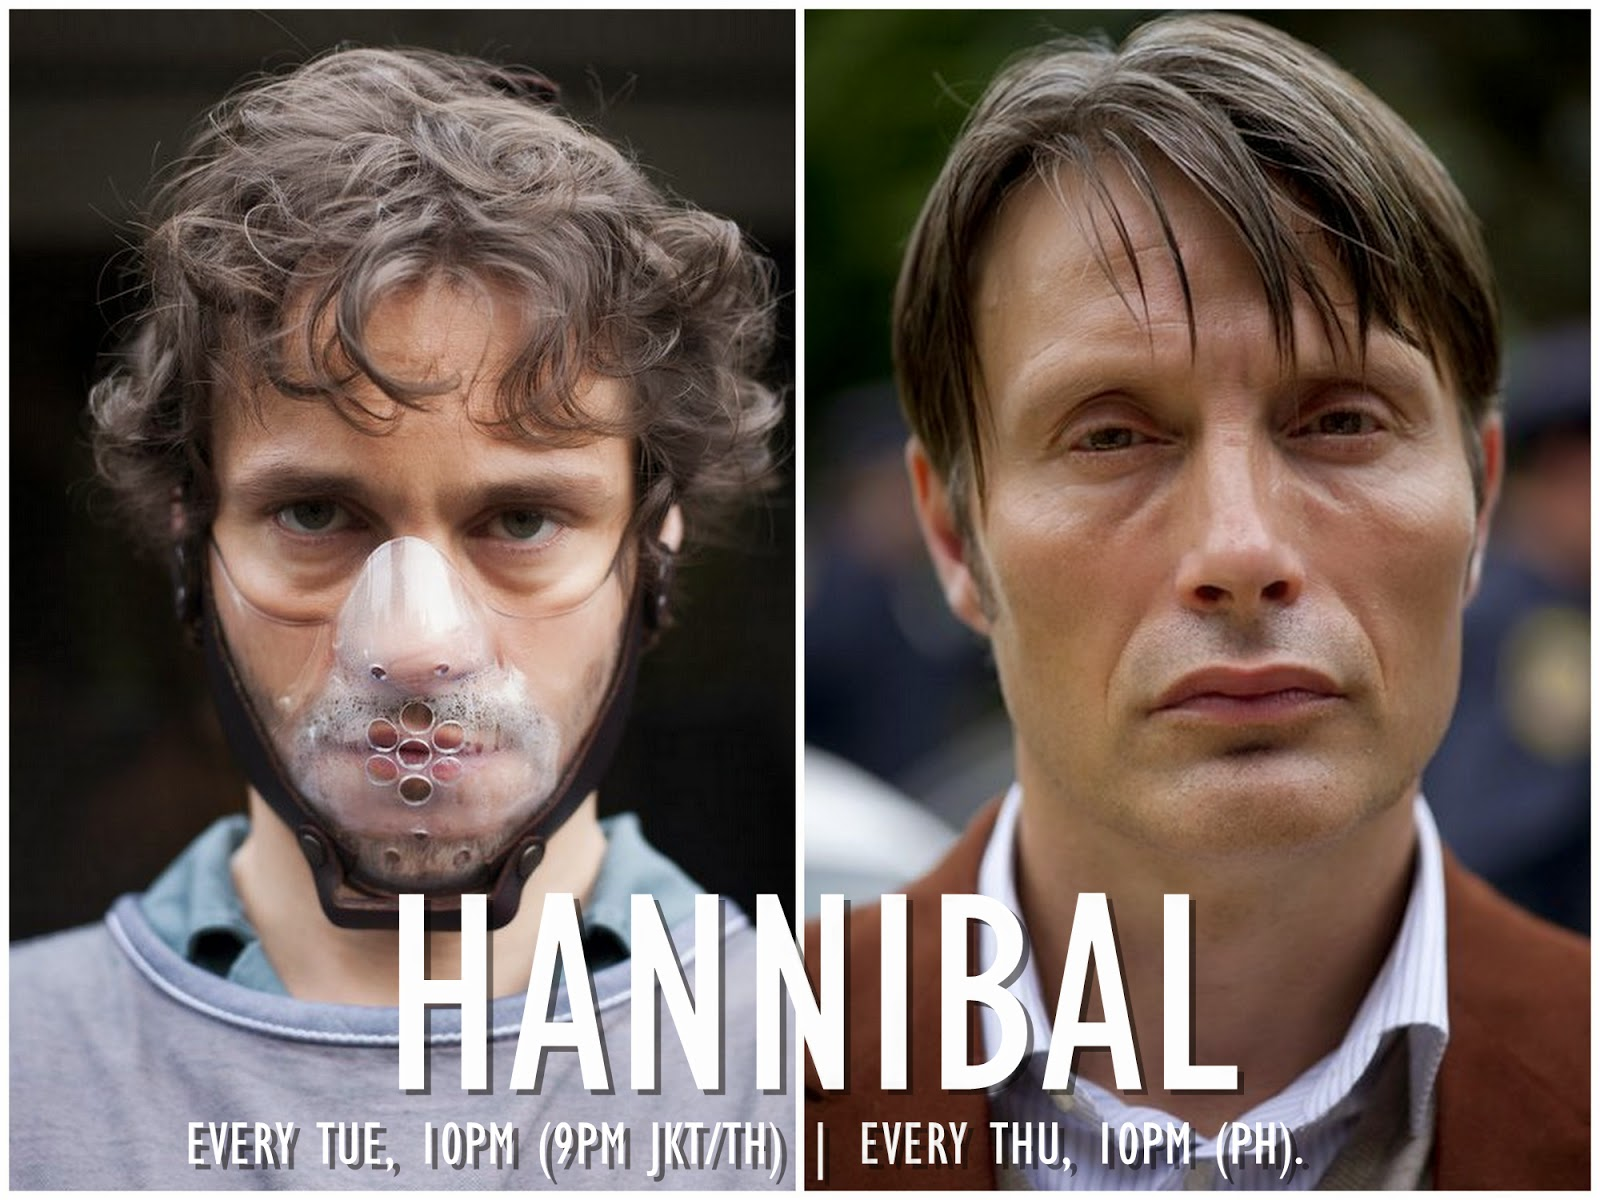 Hannibal - now on AXN every Tuesday 10PM GMT+8. Photo by NBC - © 2013  NBCUniversal Media, LLC